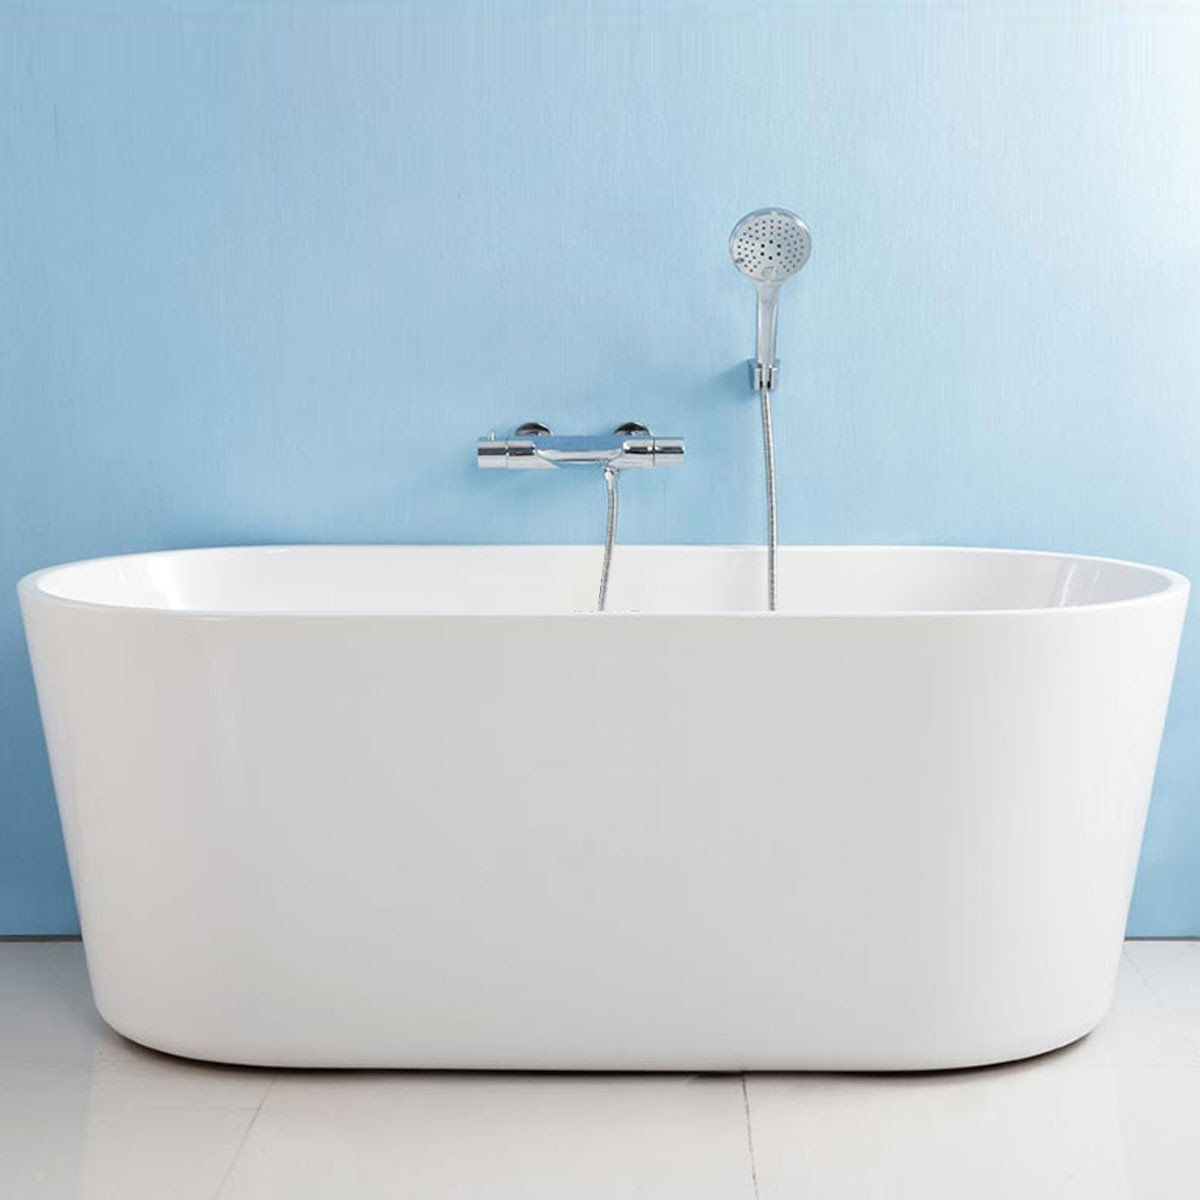 62 In Seamless White Acrylic Freestanding Bathtub (DK-AT-96675 ...